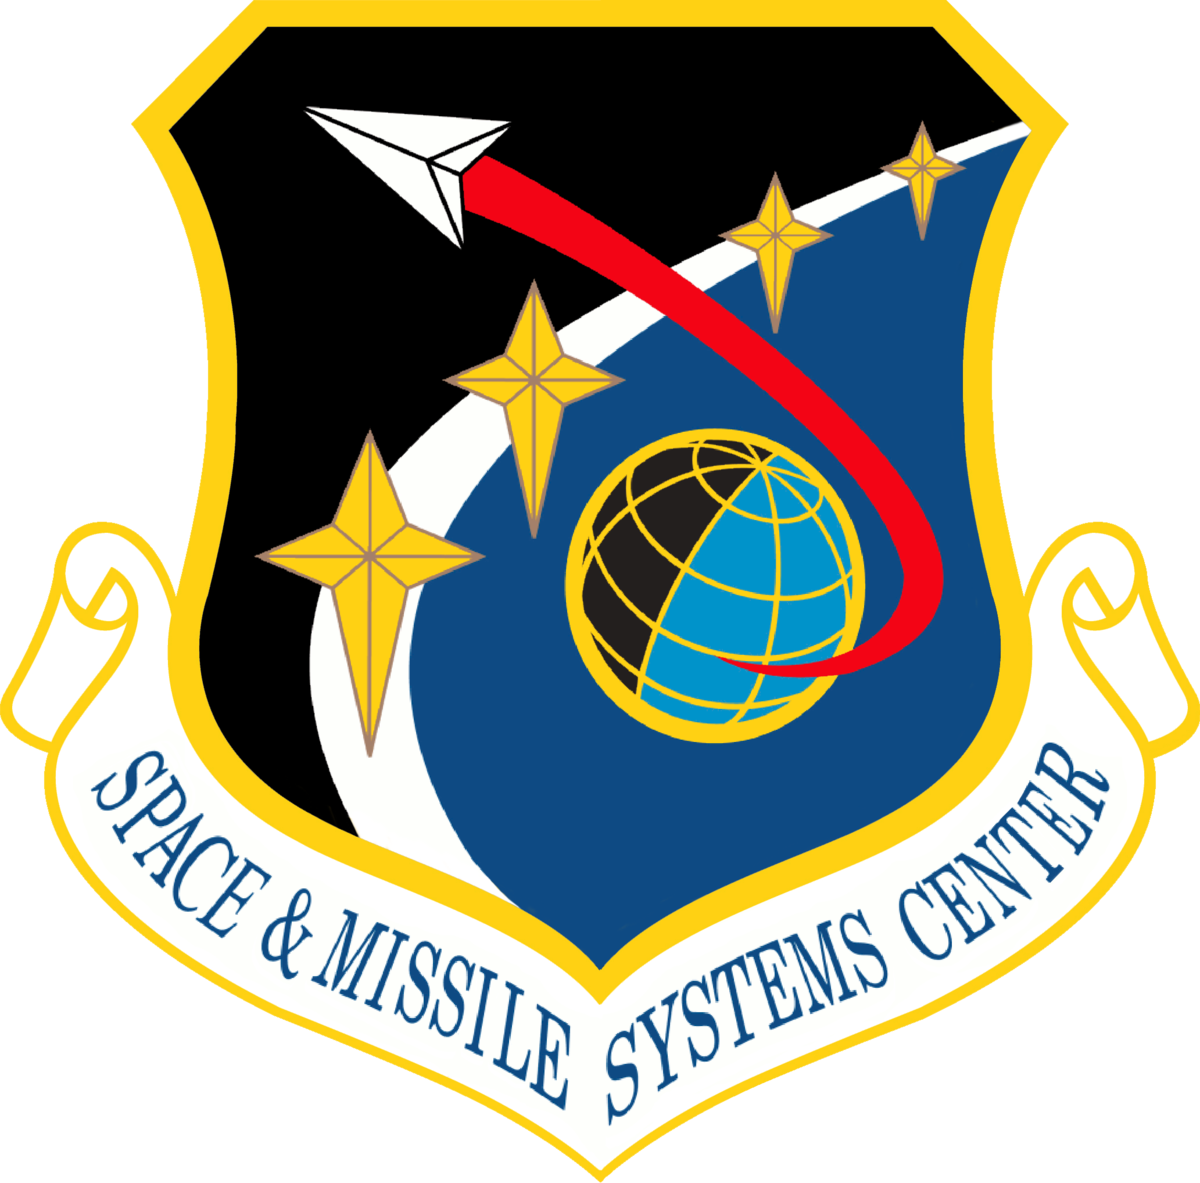 Missile and space facilities maintenance bases of dating